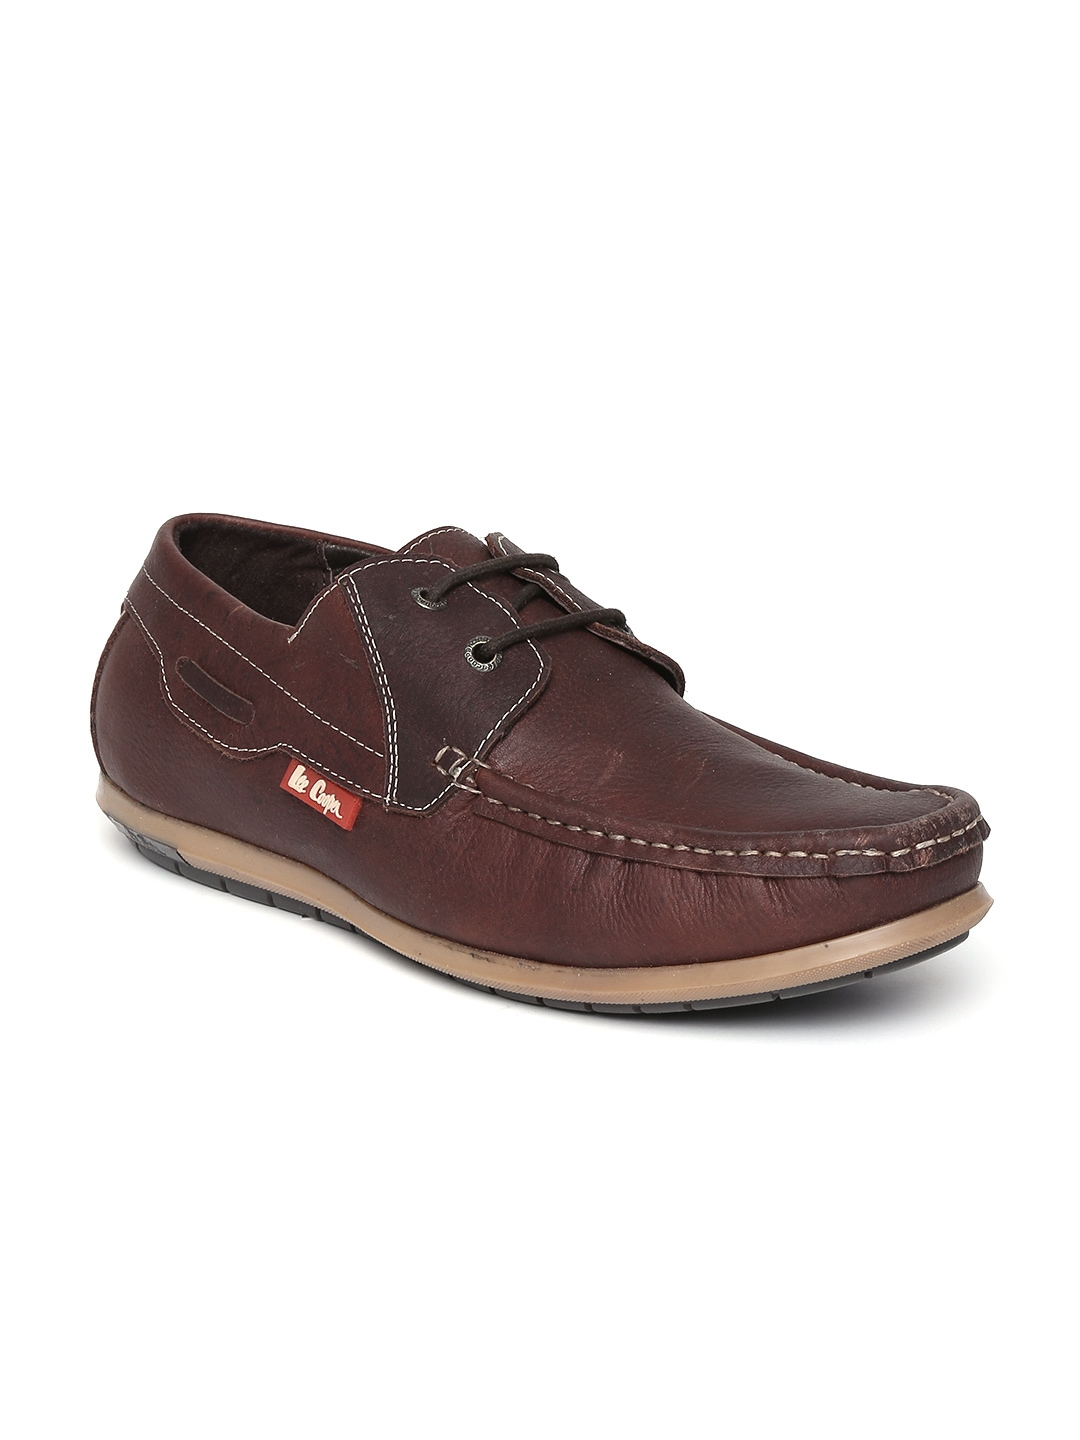 Lee cooper slippers online shopping